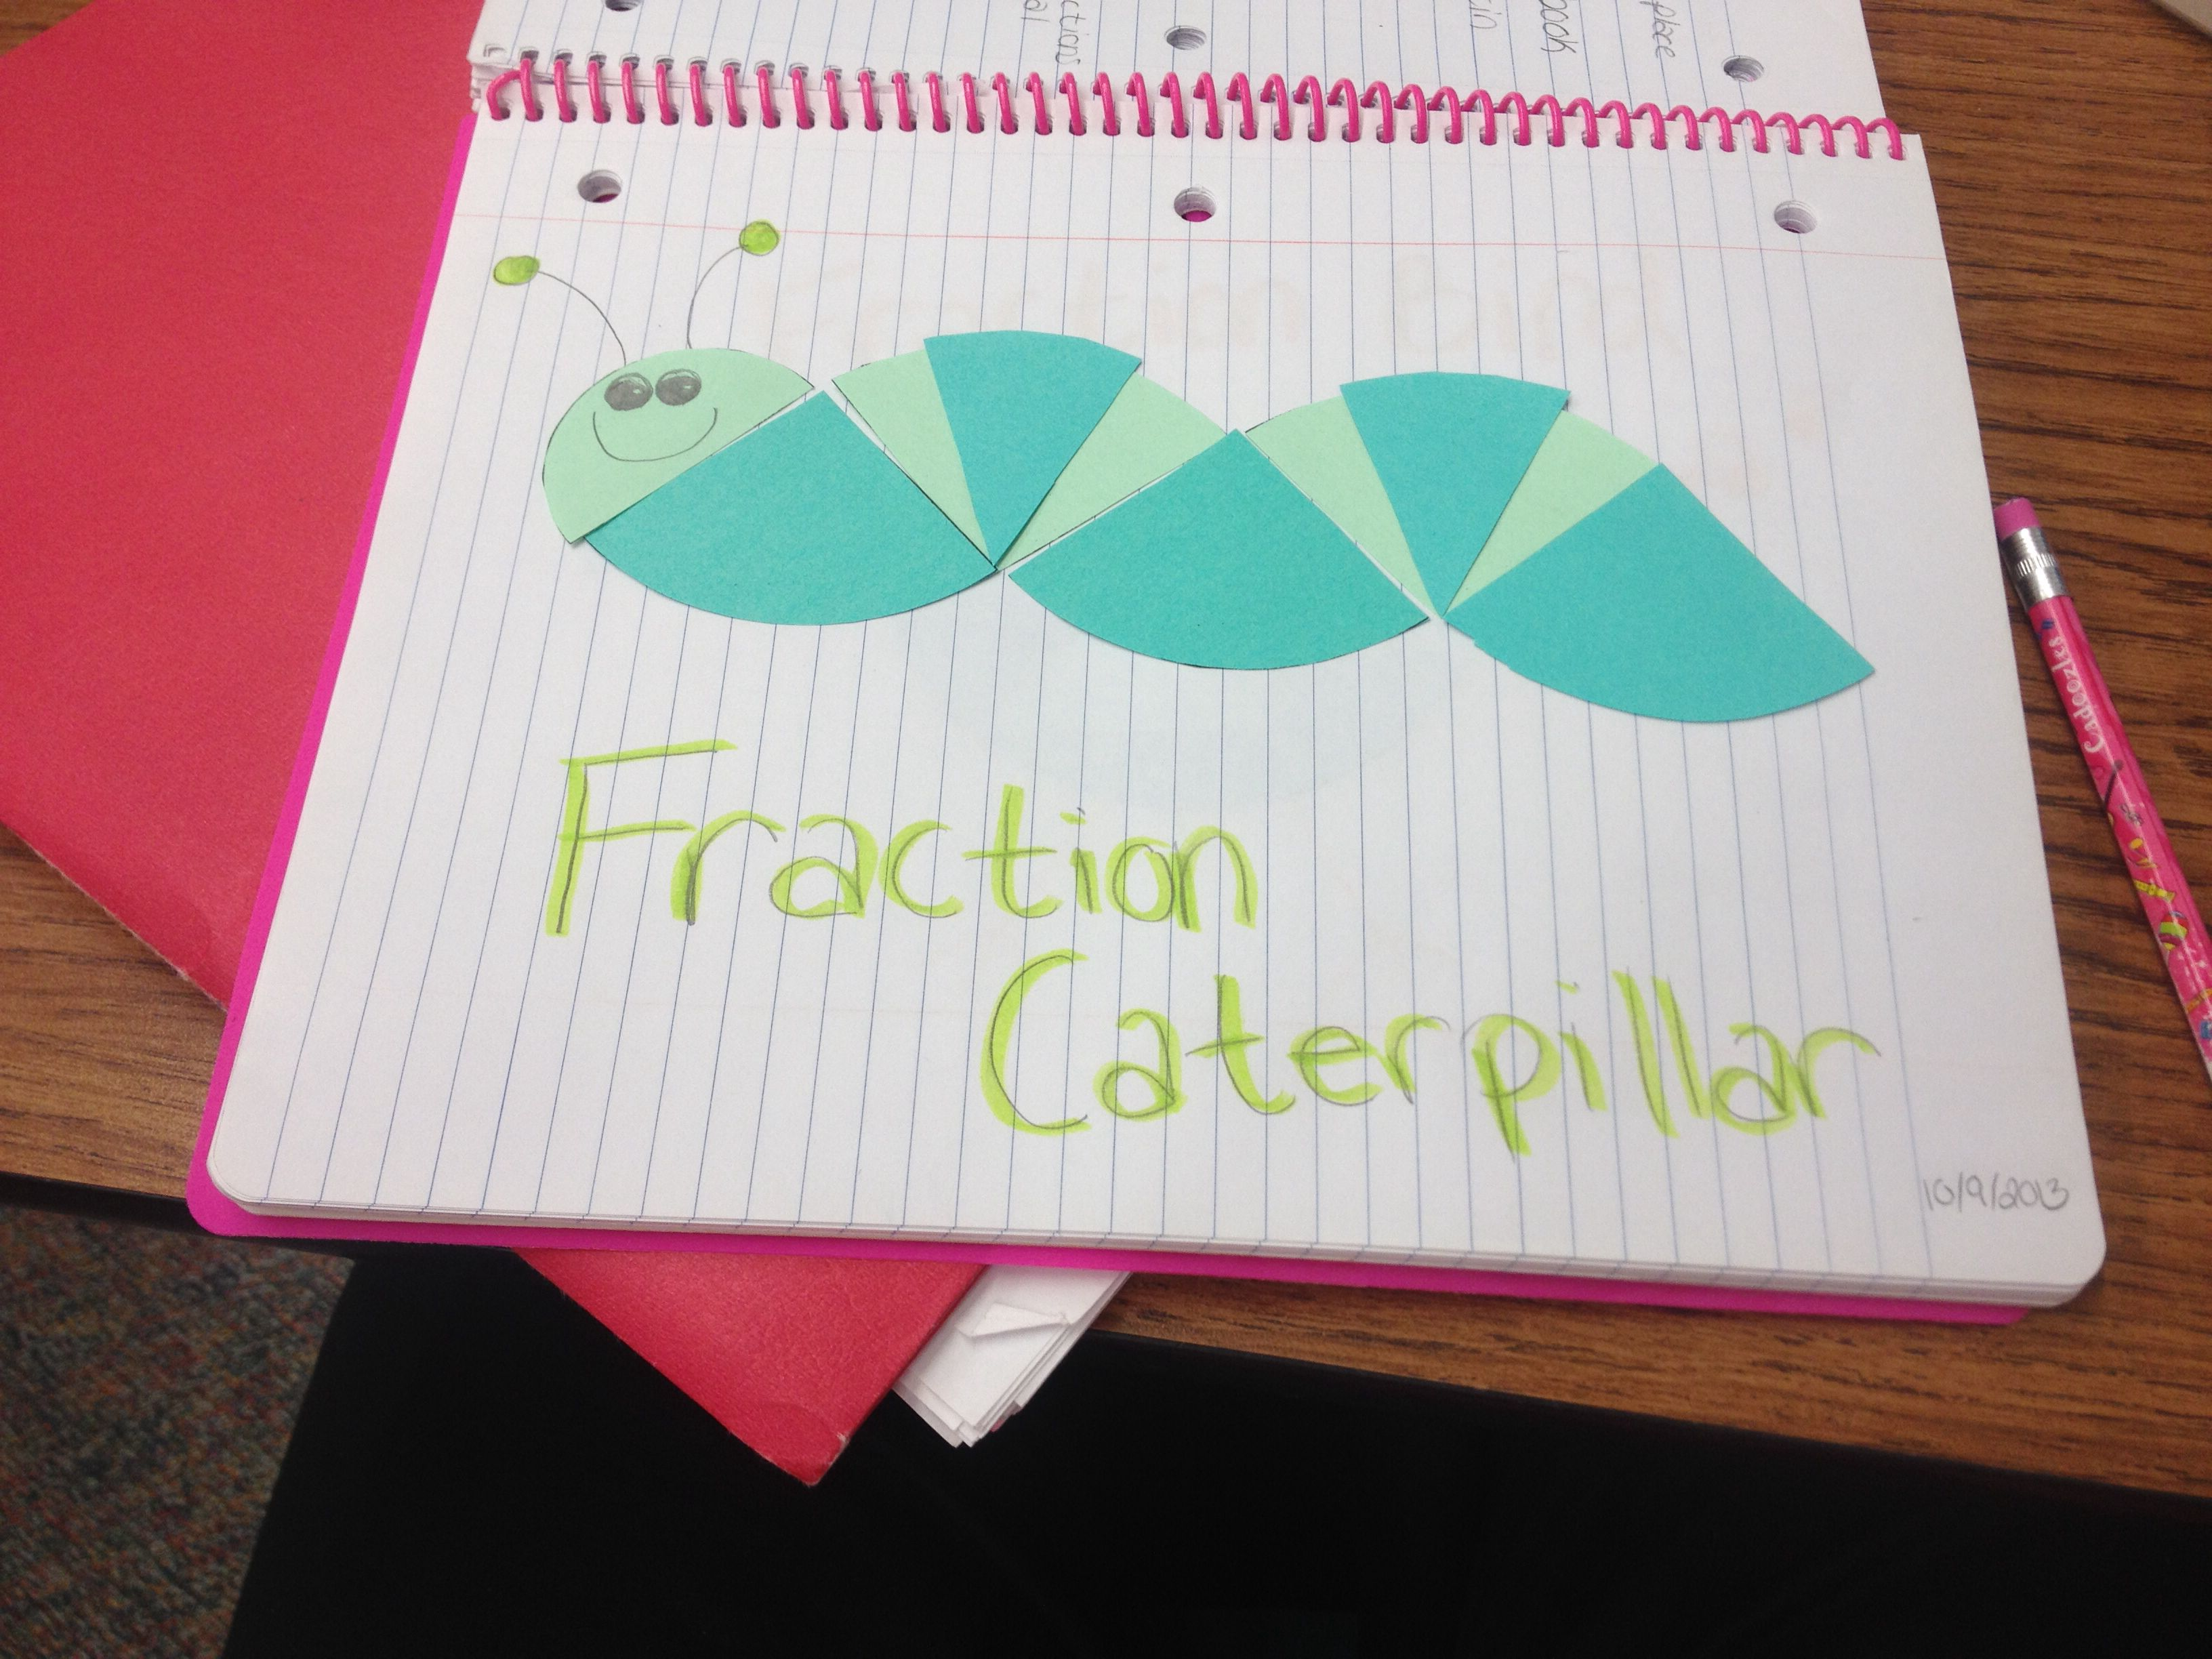 Fraction Caterpillar Idea From The Ed Emberley S Picture